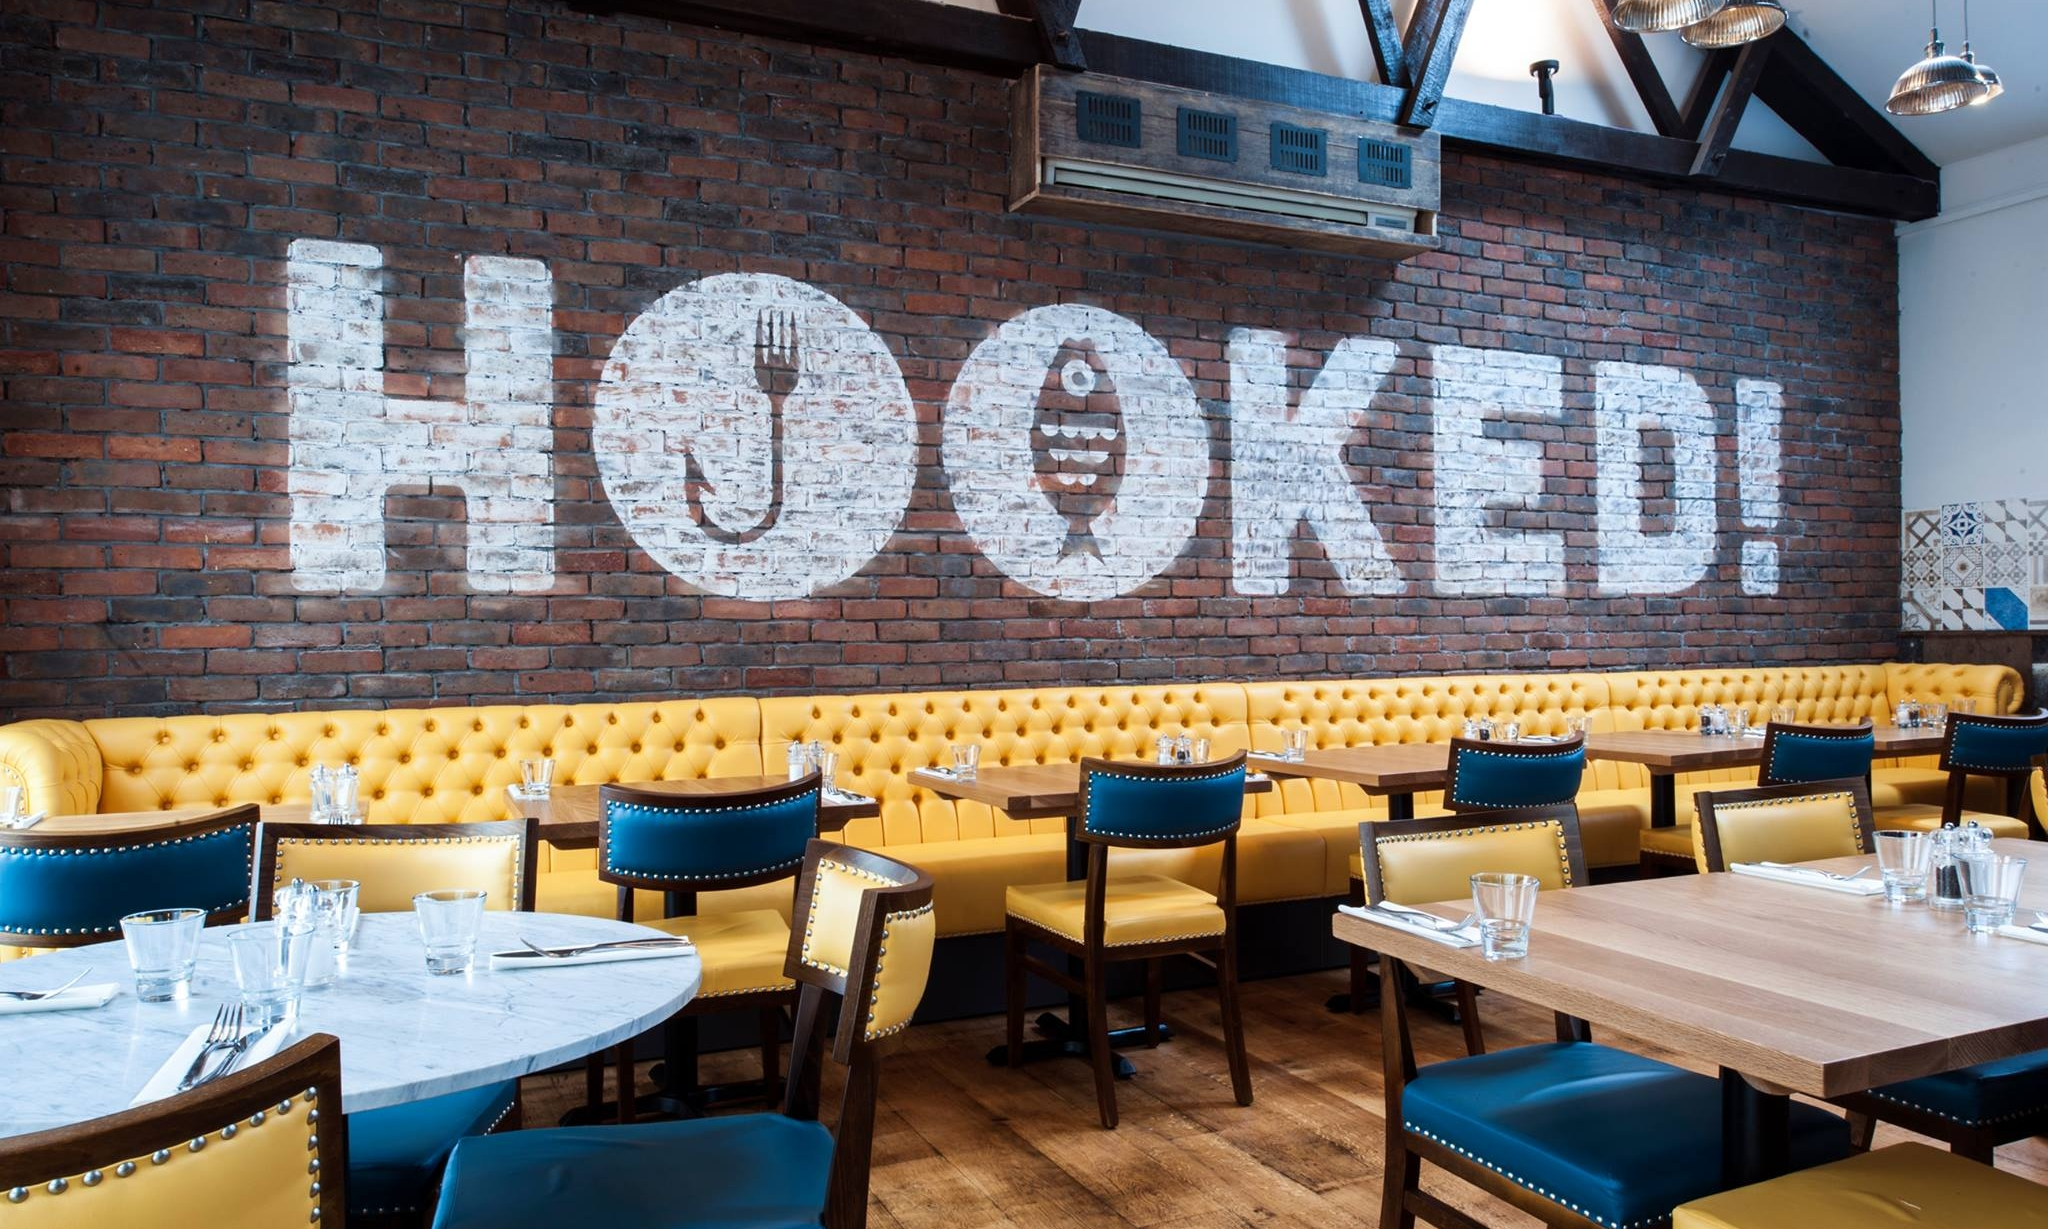 HOOKED! - This hidden gem on Tabernacle Street showcases what can be done with quality Cornish Seafood. With sustainability being at the forefront of the fishing industry Hooked! is proud to offer a fresh lunch and evening menu using locally sourced sustainable fish & seafood as well as fabulous meat and vegetarian dishes.01872 274700